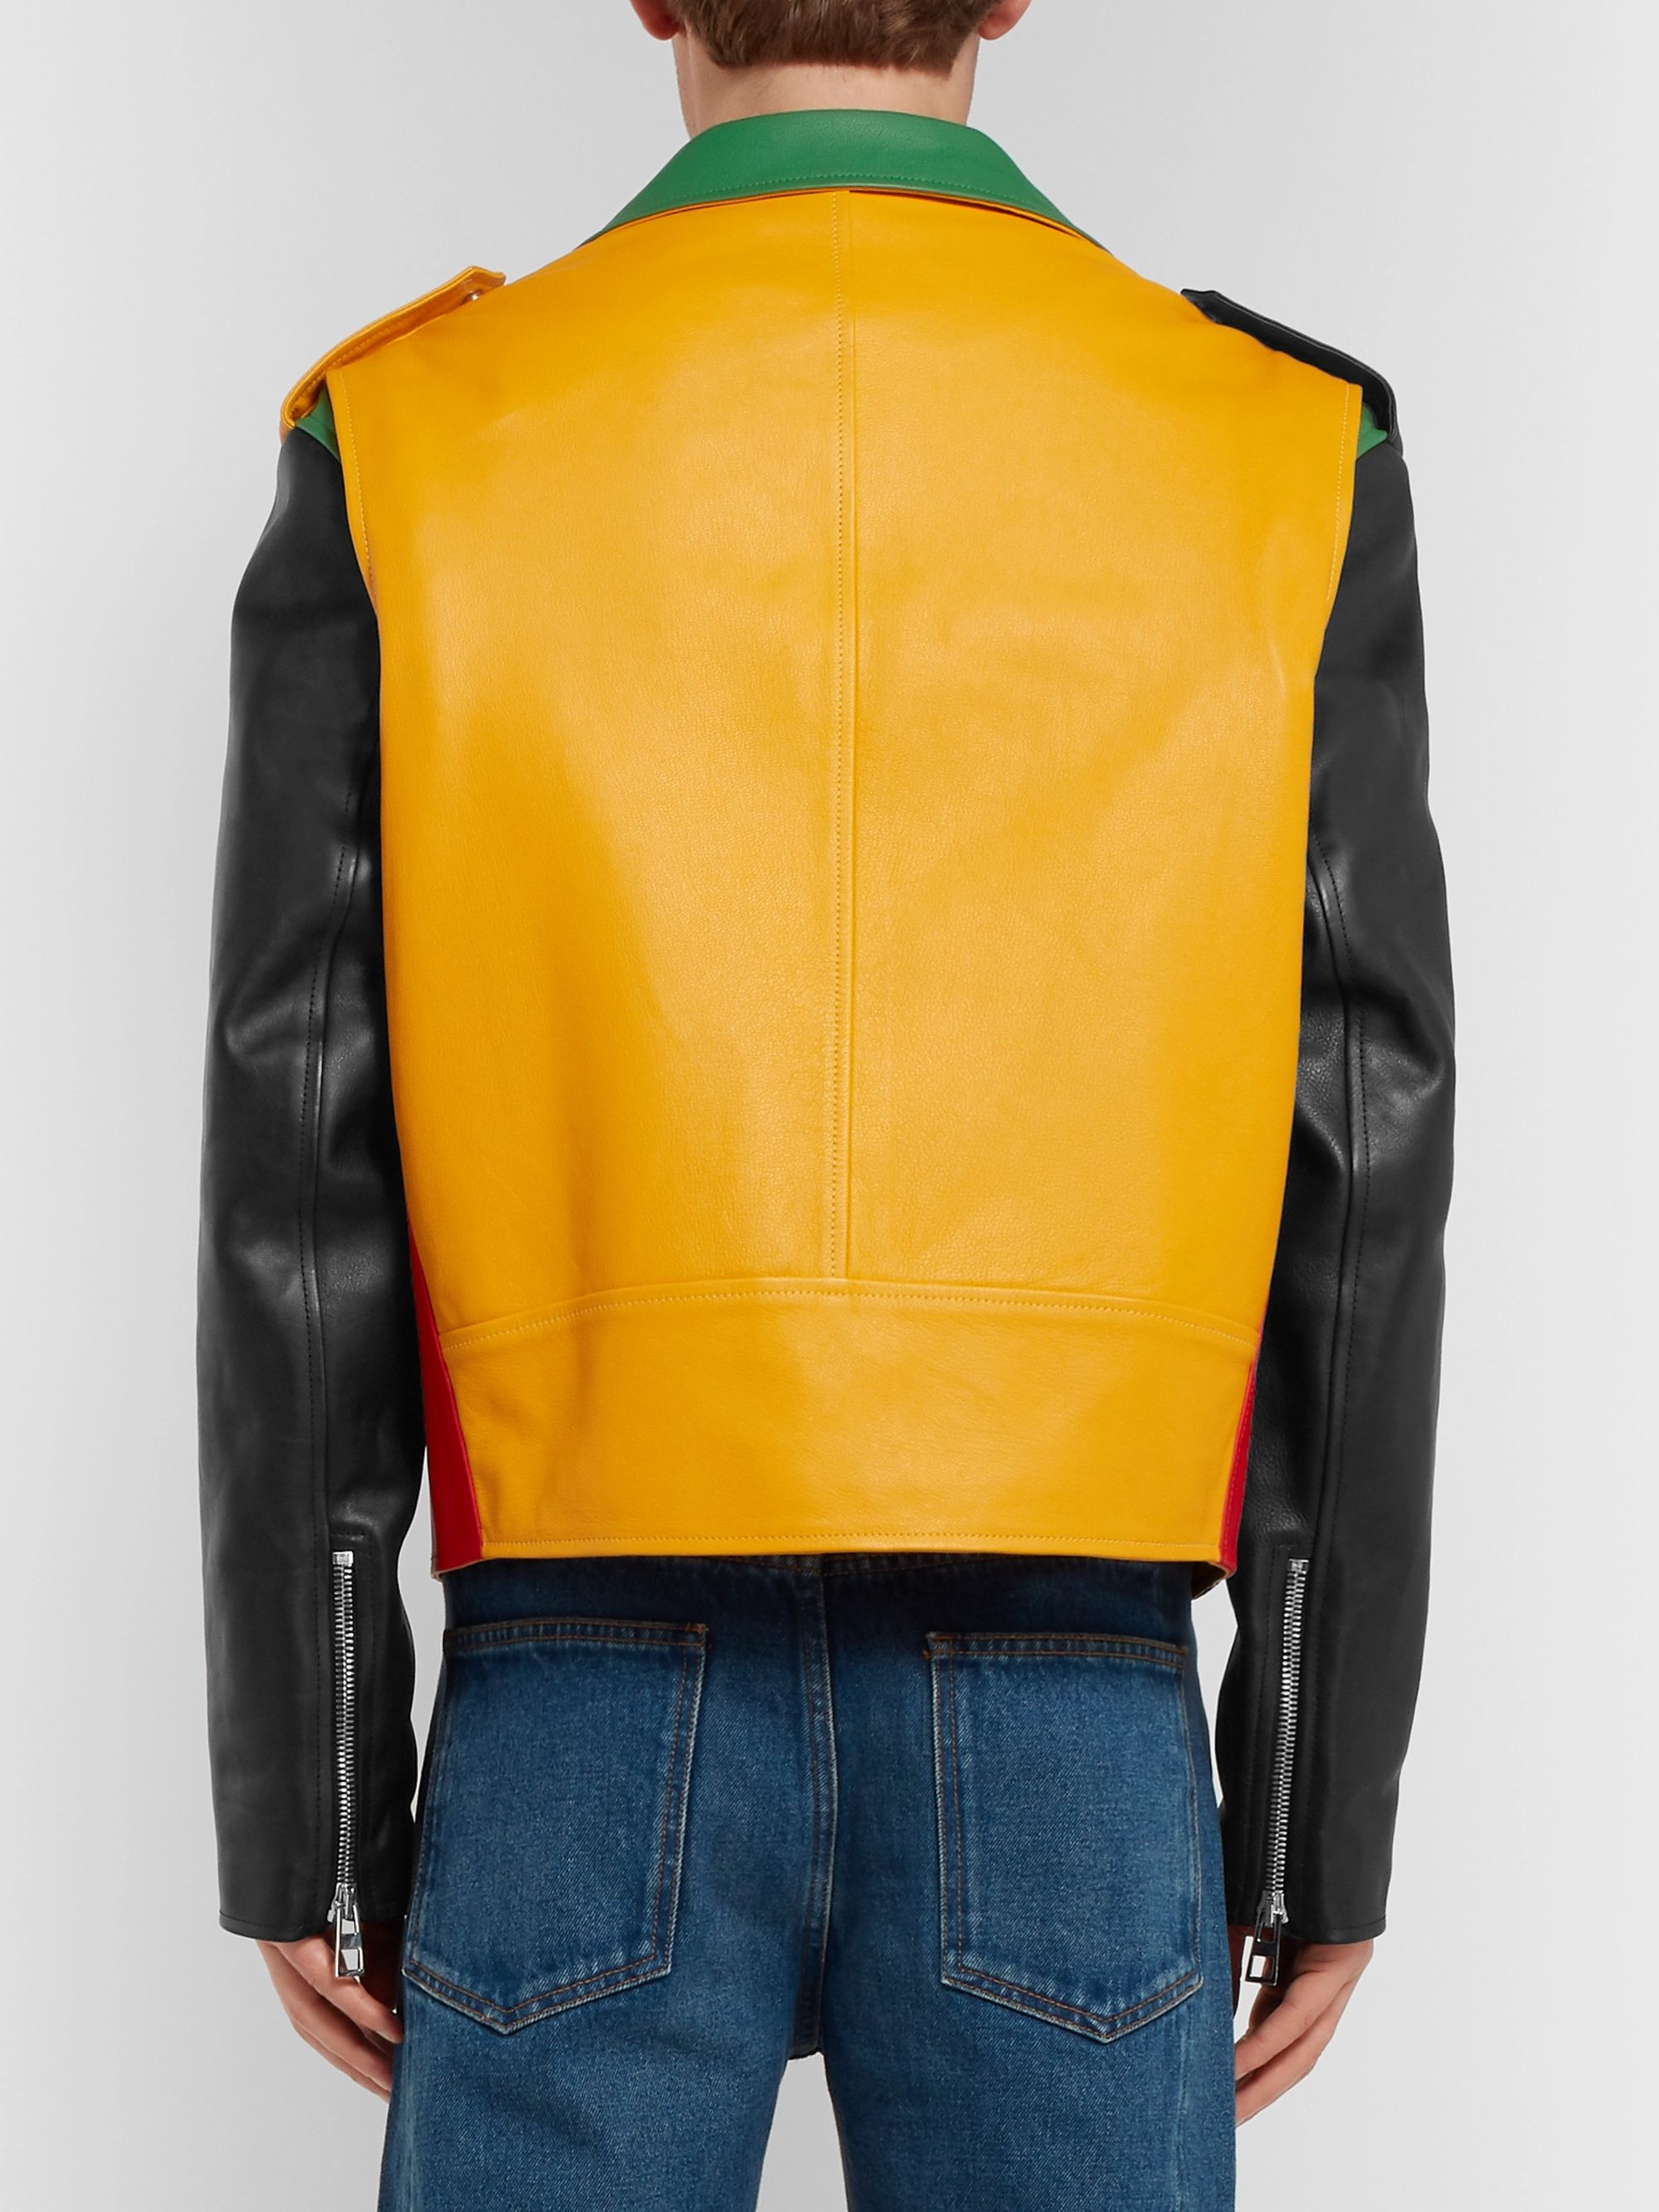 Loewe Oversized Colour-Block Leather Biker Jacket